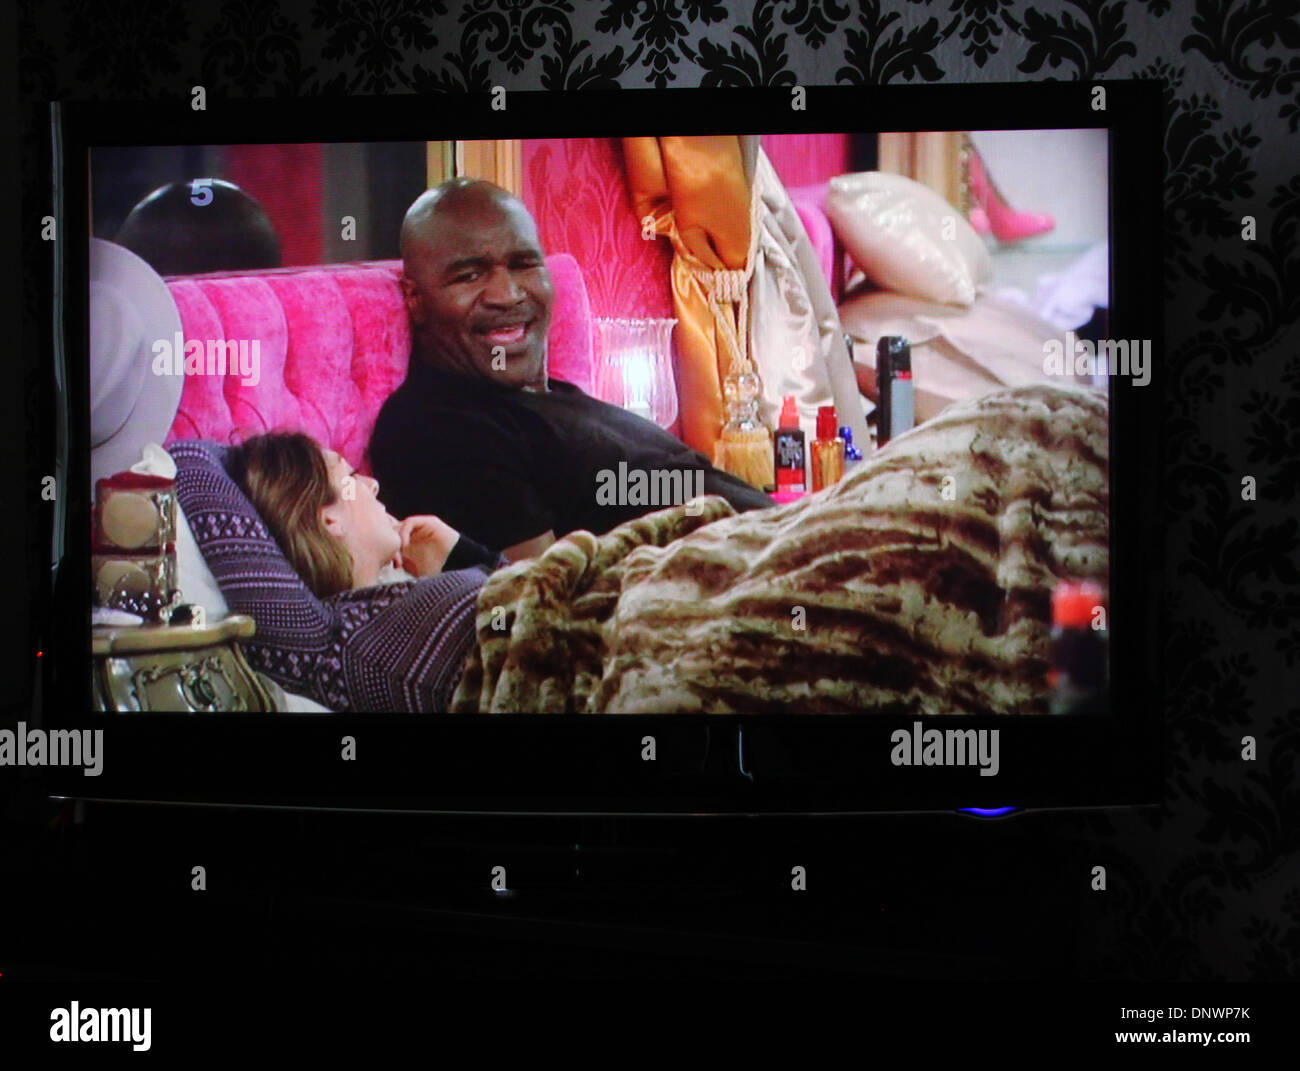 Celebrity Big Brother contestant and former world heavyweight boxing champion Evander Holyfield makes comments that being gay 'ain't normal' sparking backlash on social media. Programme broadcast on 5 January 2014. Holyfield makes his views known yo fellow housemate Luisa Zissman. - Stock Image